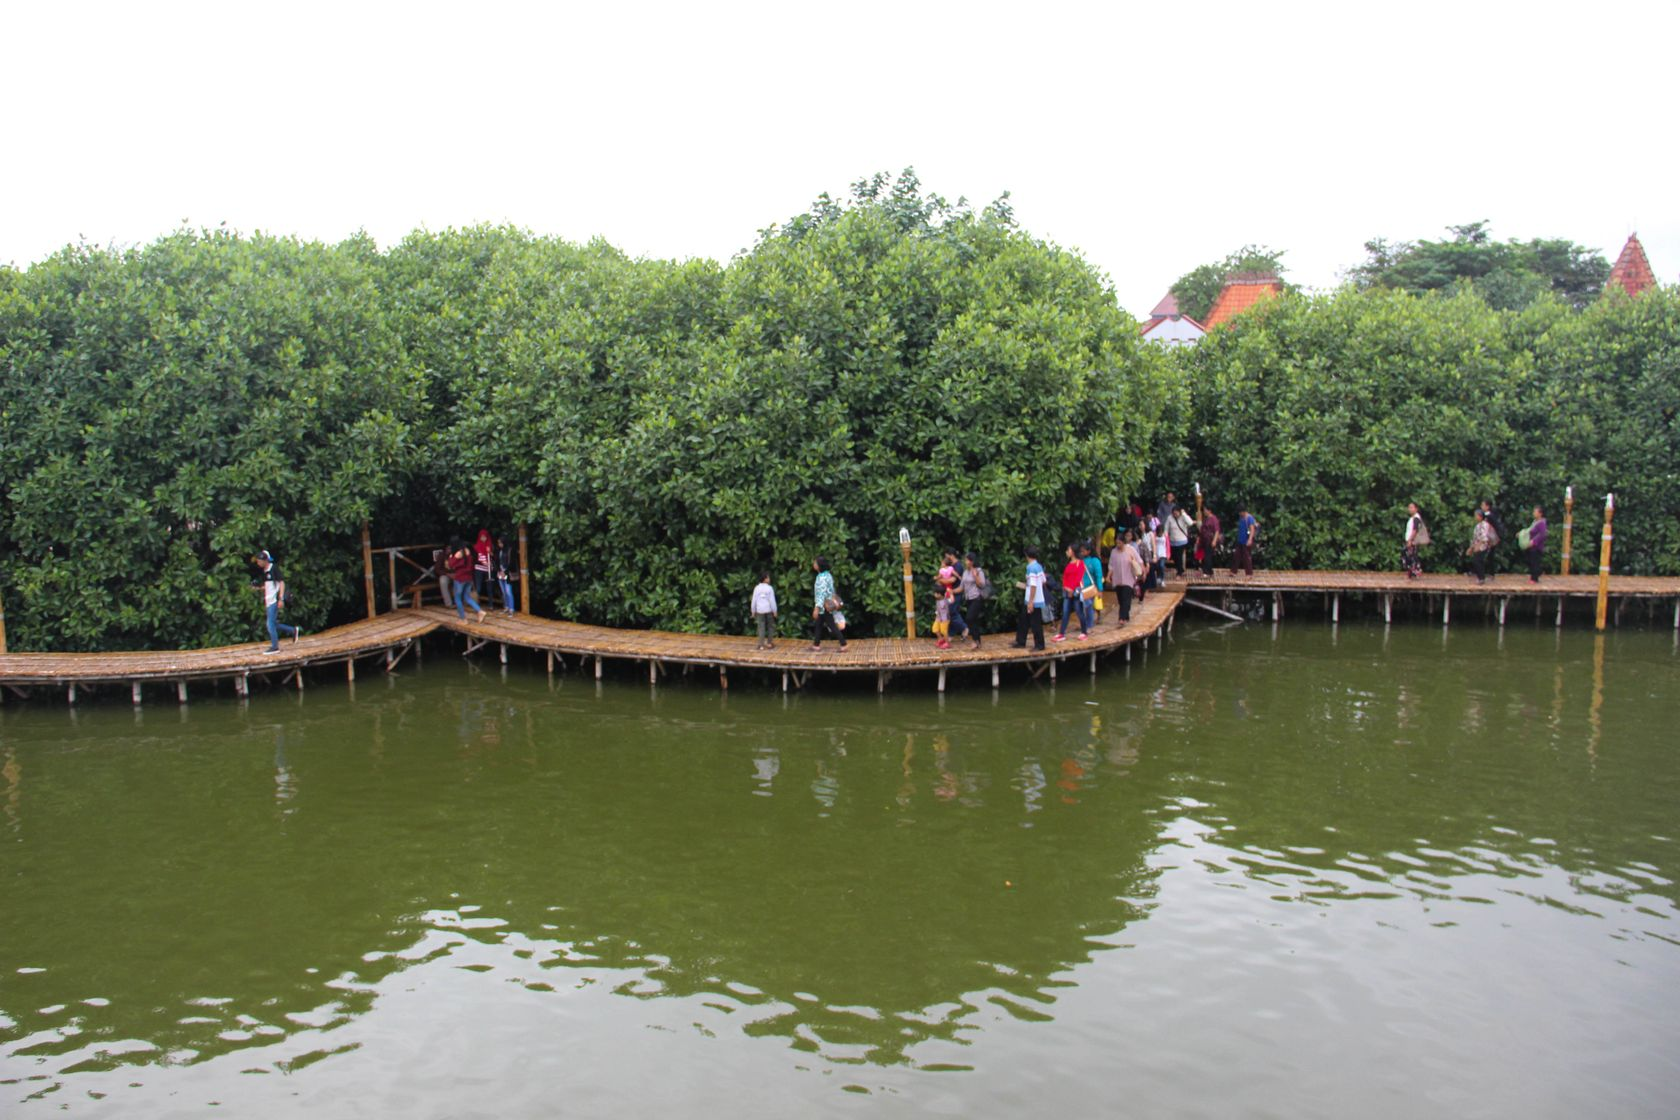 mangrove-tourism-in-indonesia-6.jpg